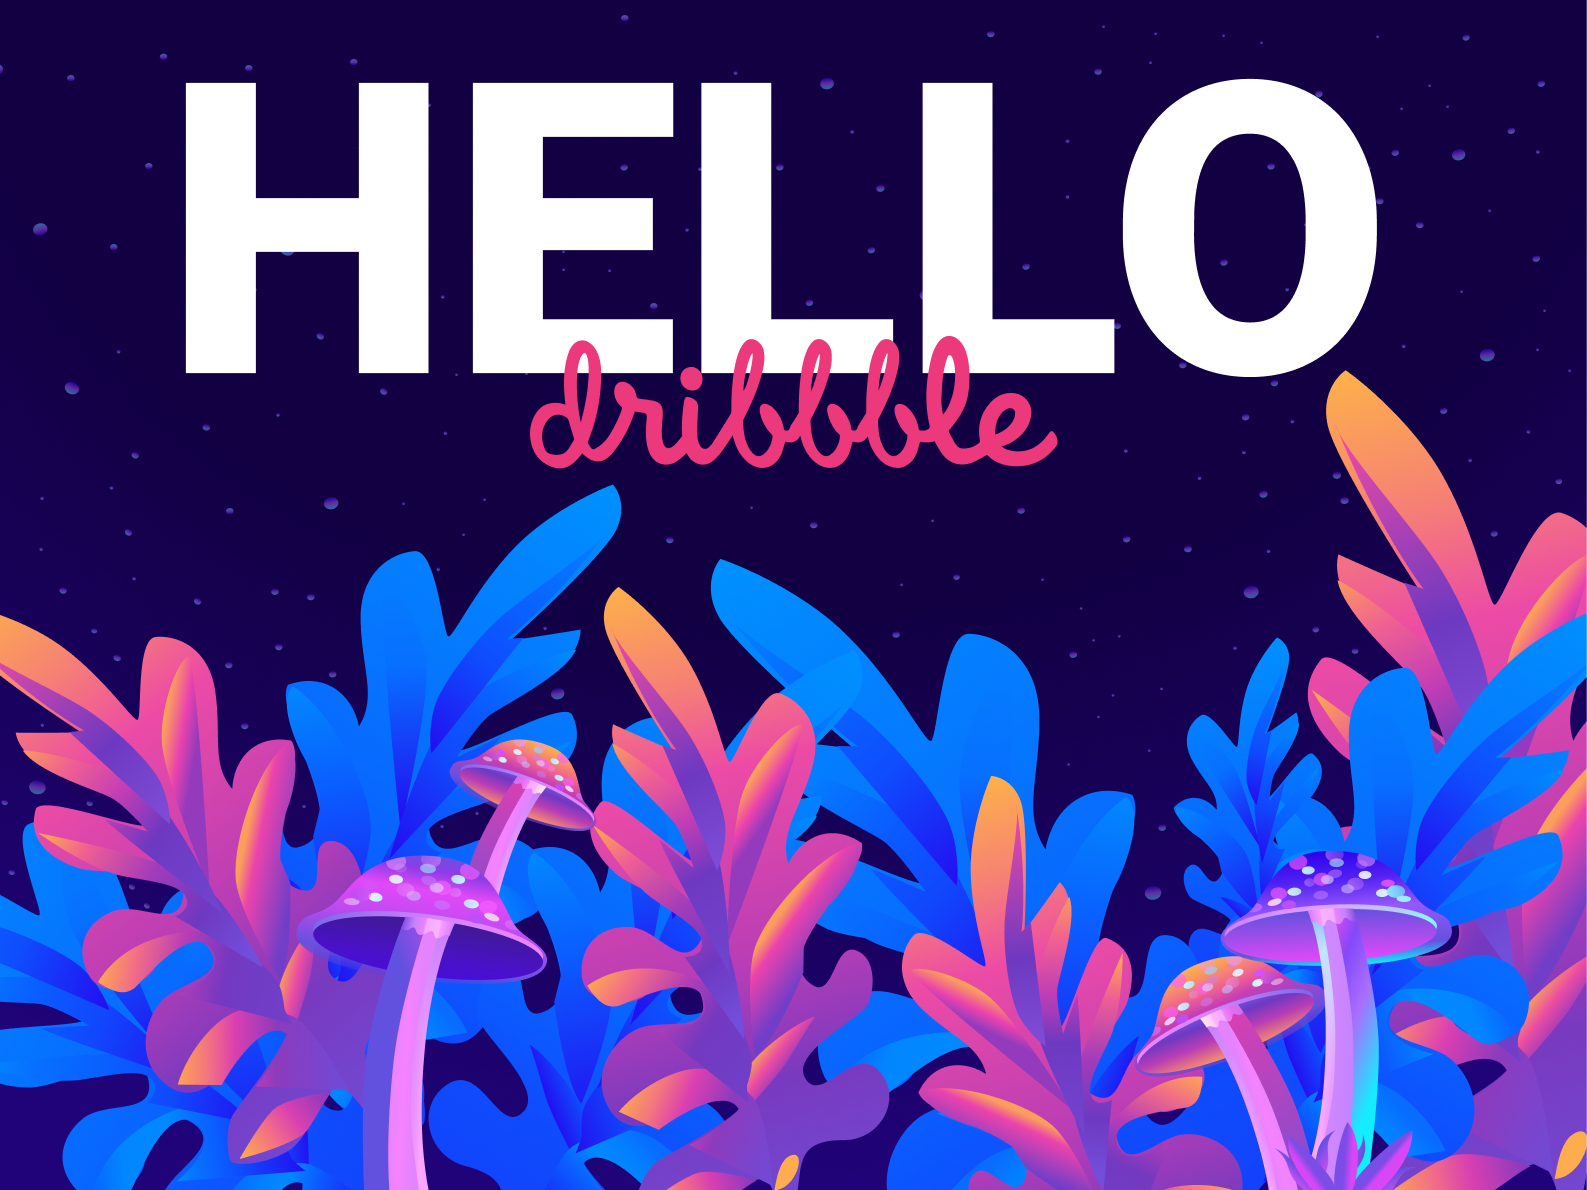 Hello Dribble flat ui vector design illustration